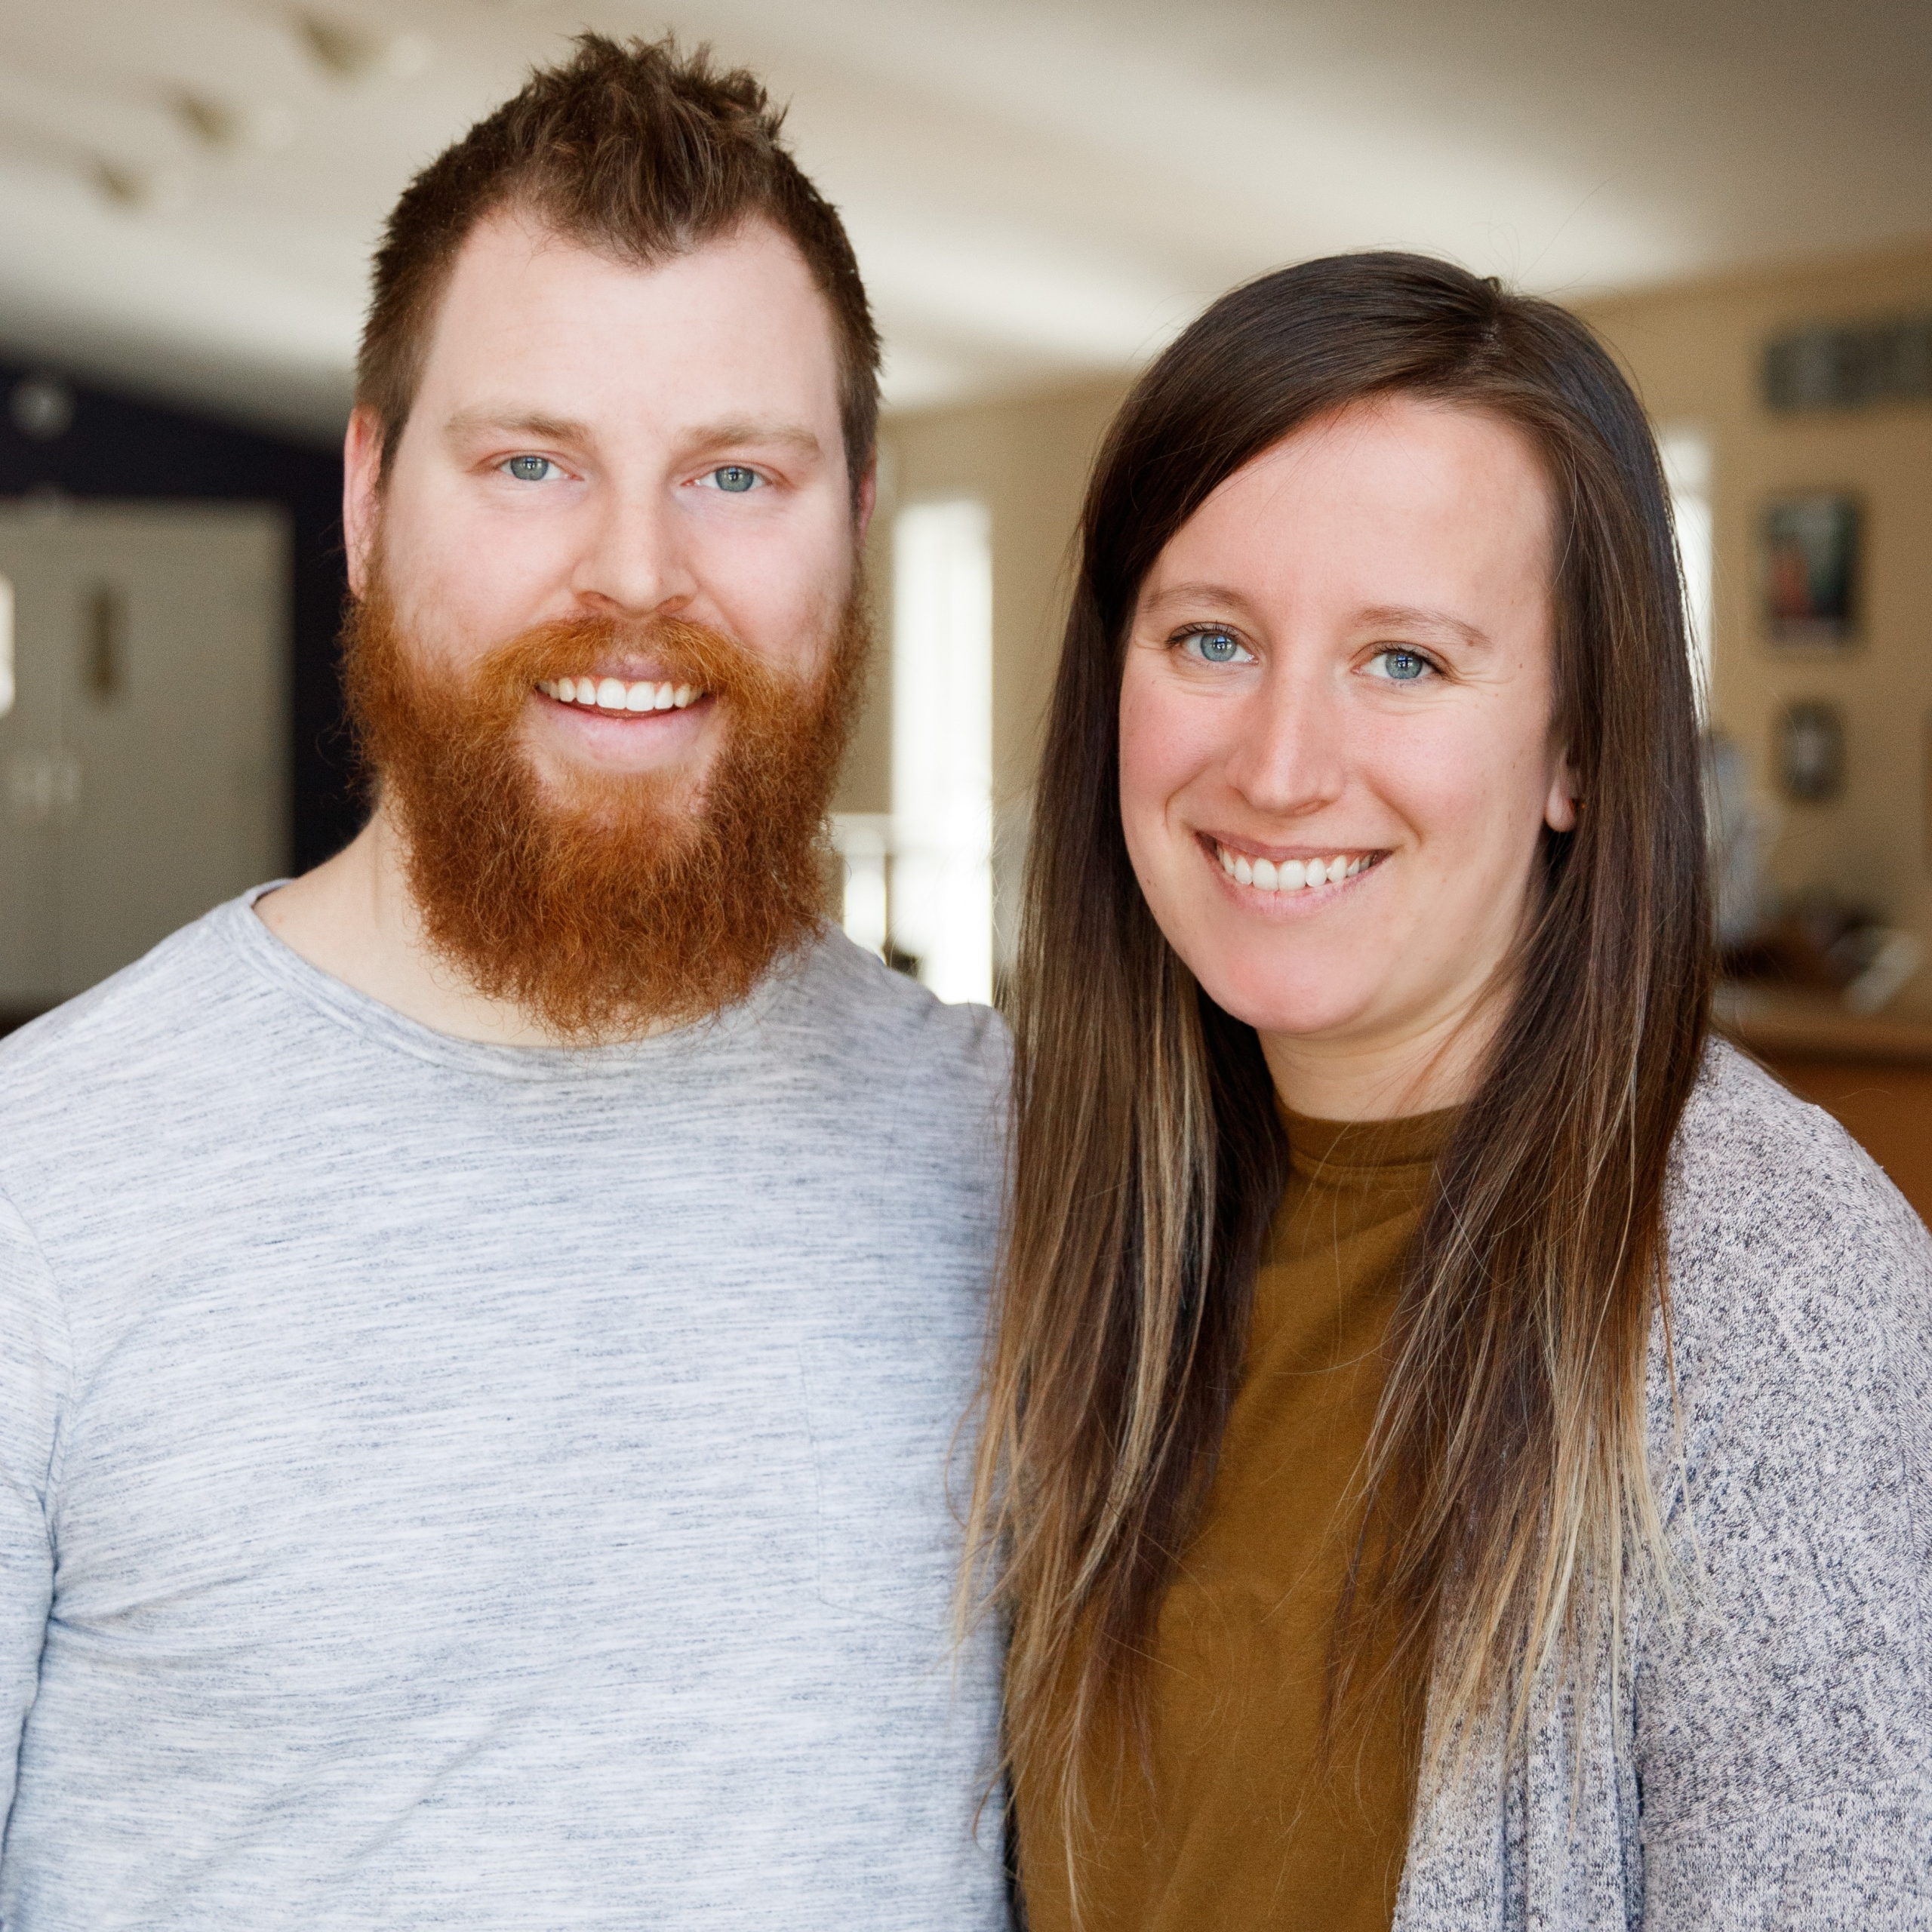 Our associate student ministries pastor, Perry Dunlap, and his wife Sarah.